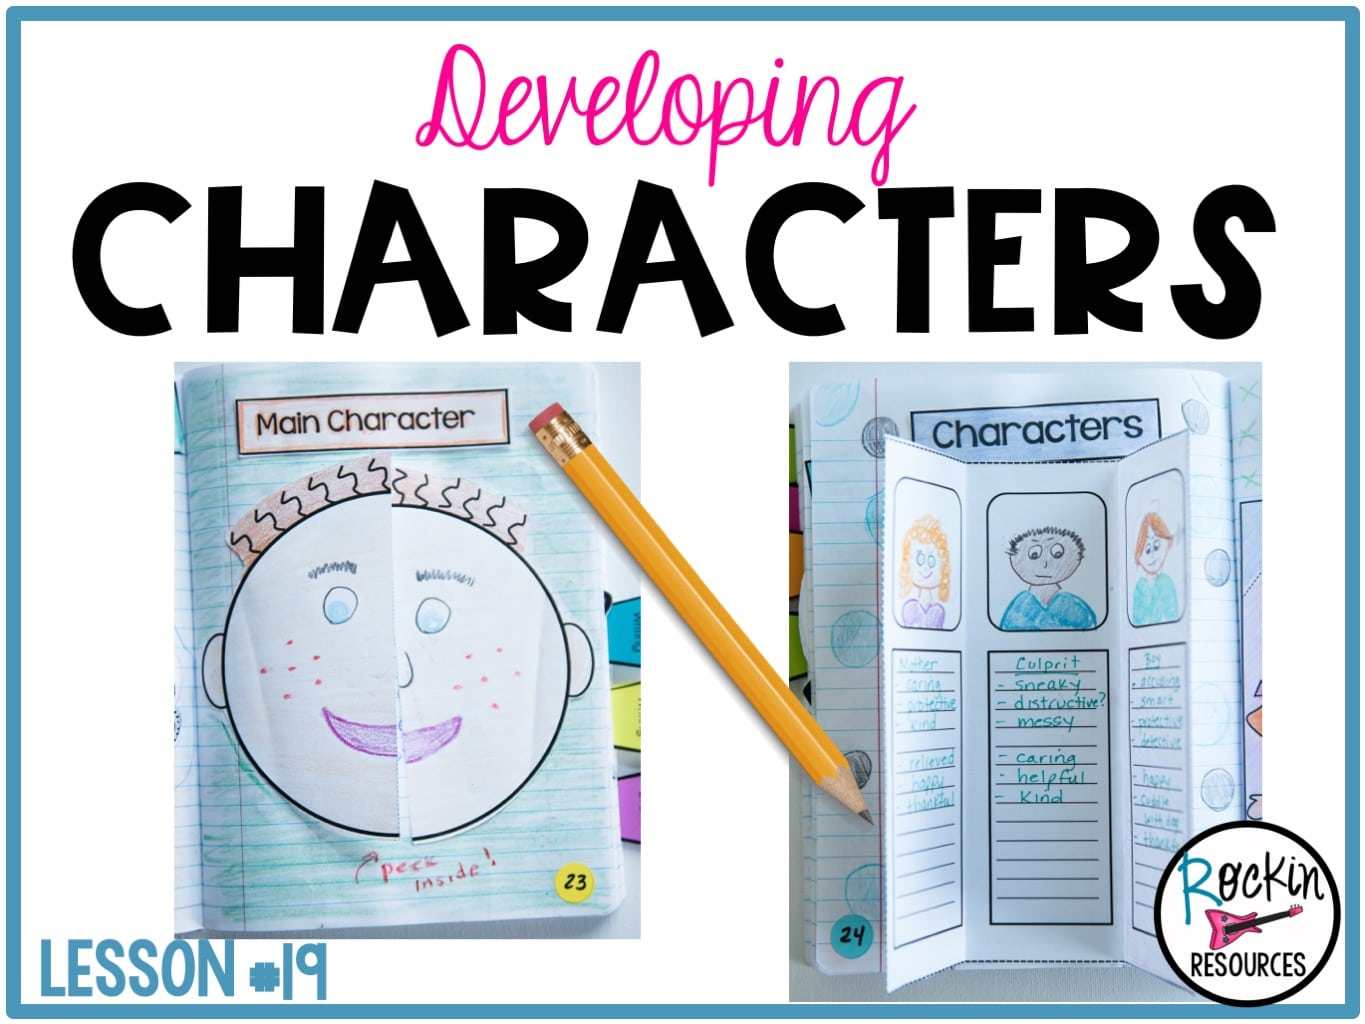 Writing Mini Lesson 19 Developing Characters In A